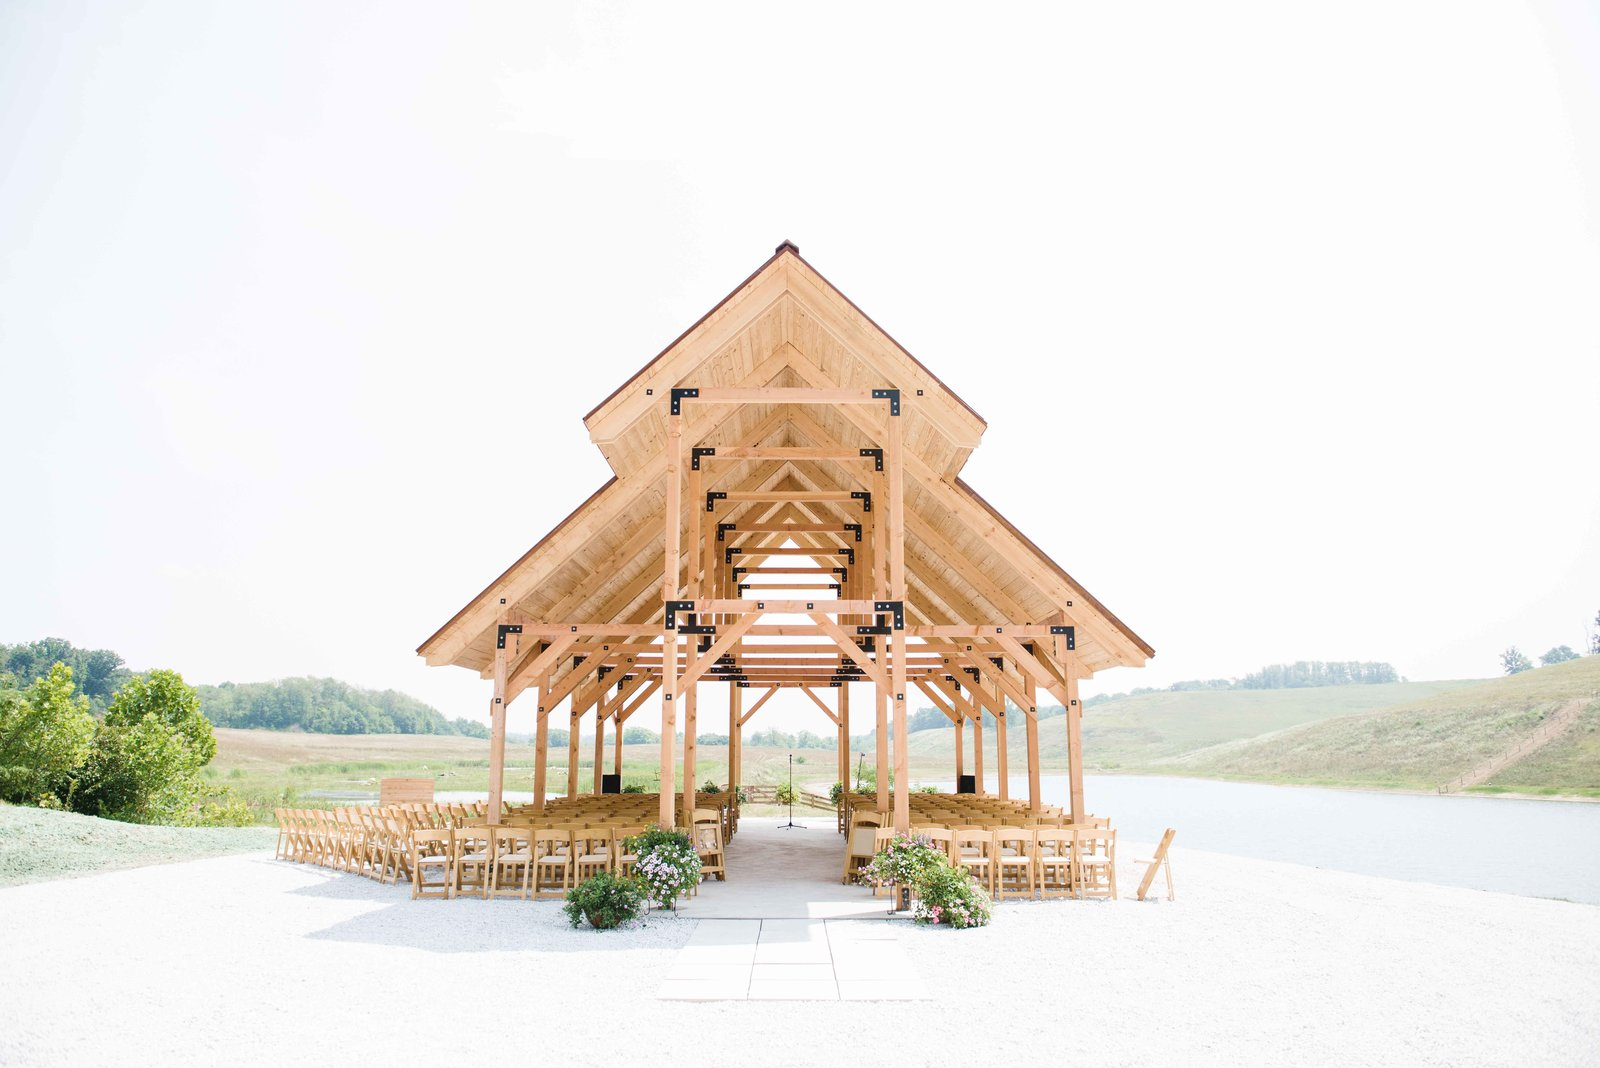 The large open-air pavilion, also overlooking the lake, echoes the retreat's timber construction and natural hues. It hosted the architect's wedding ceremony in the year of its completion, 2014.  Off-Grid Retreat by Zachary Edelson